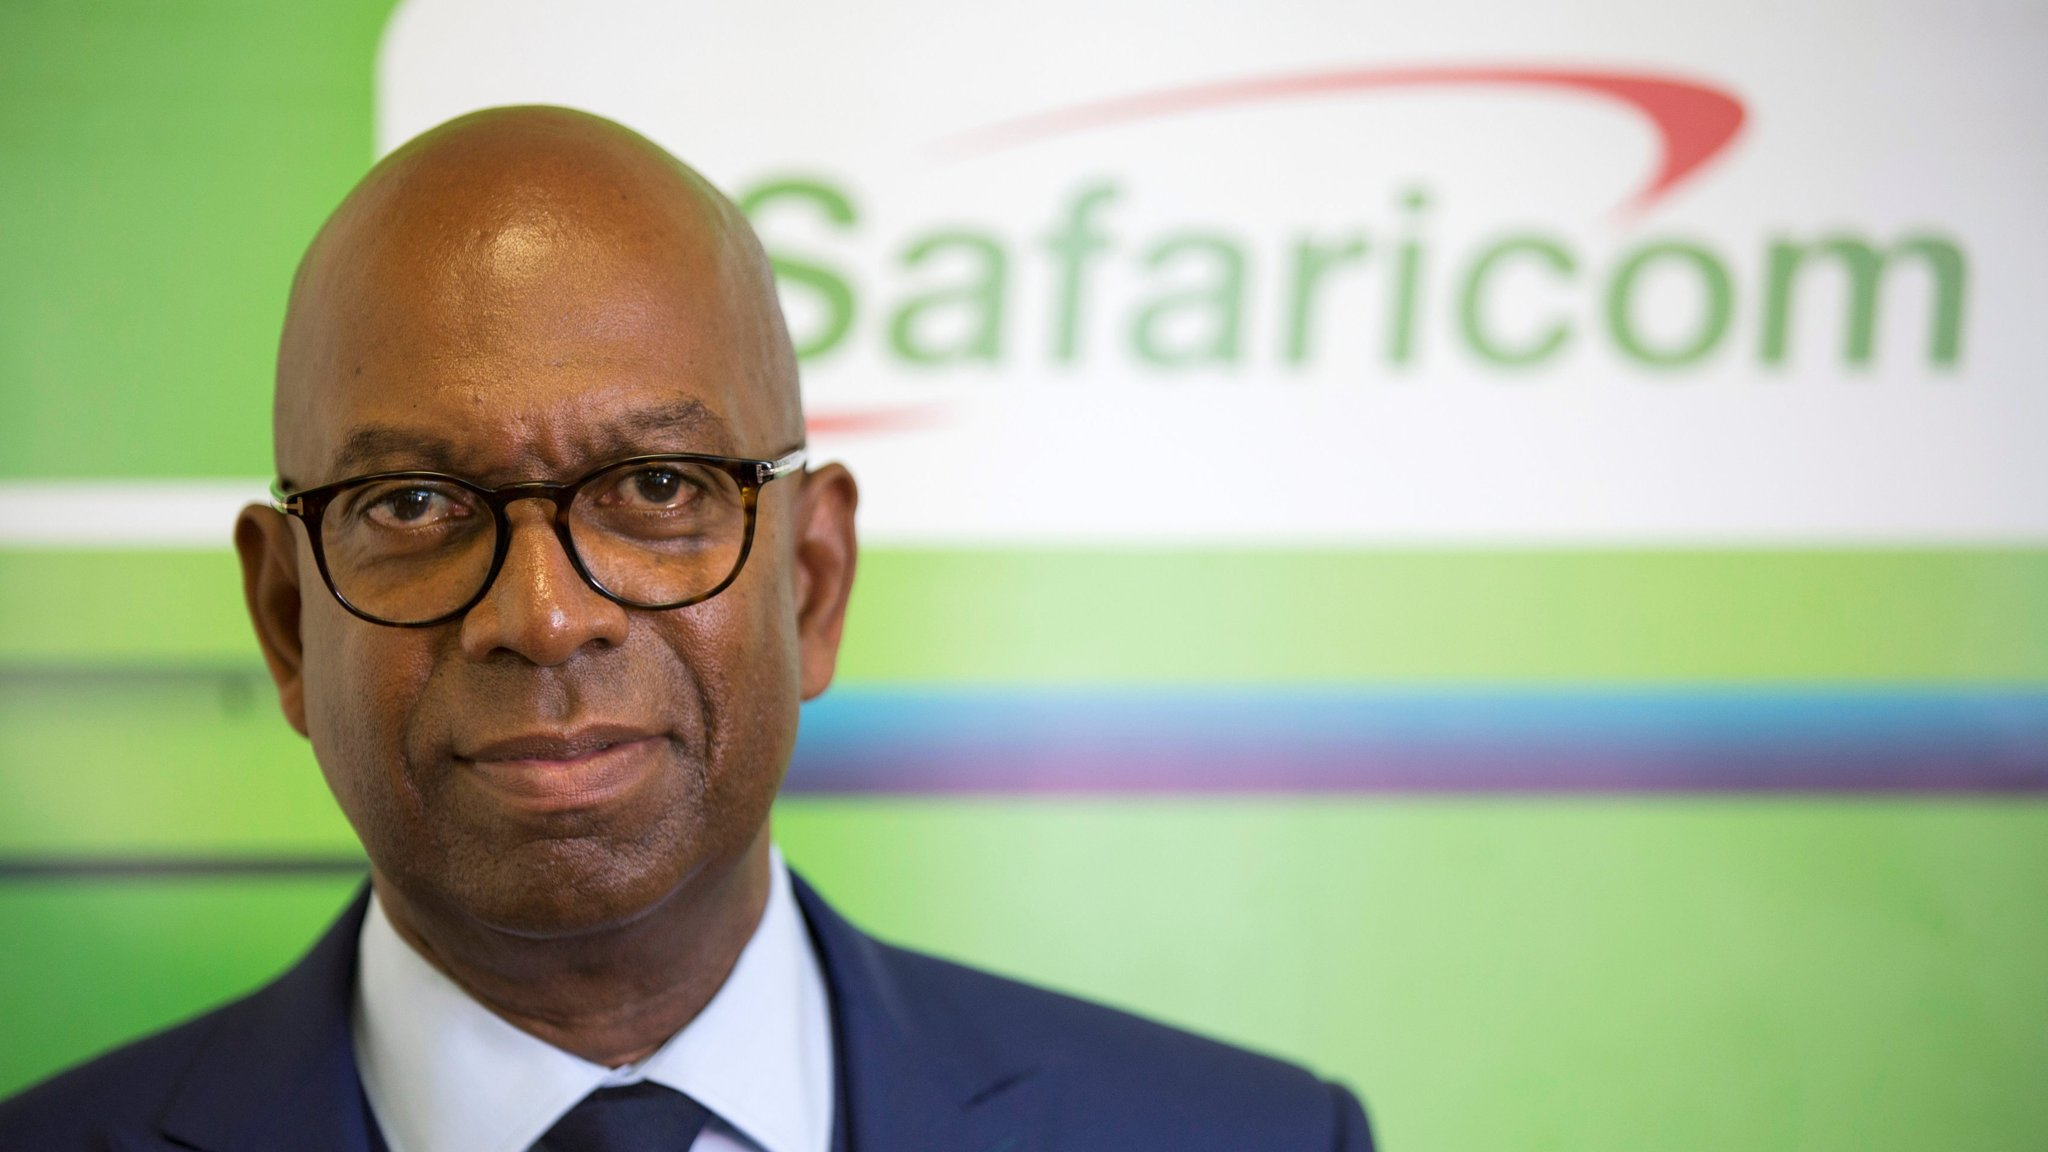 Safaricom Profits Boosted By Mobile Money Growth Financial Times